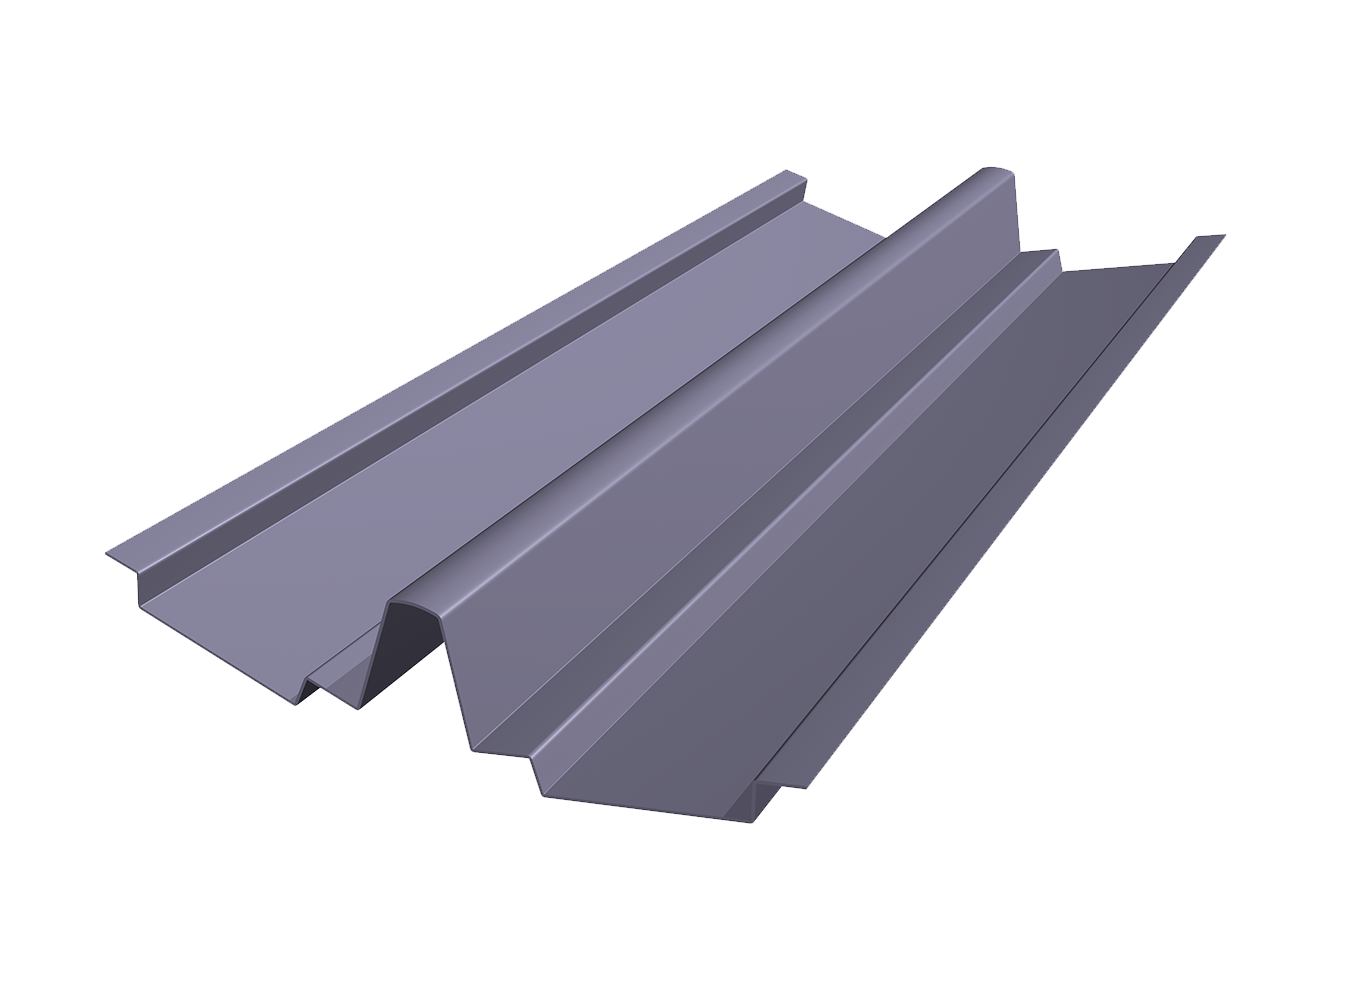 Filon V Flow Valley Trough roofing accessories